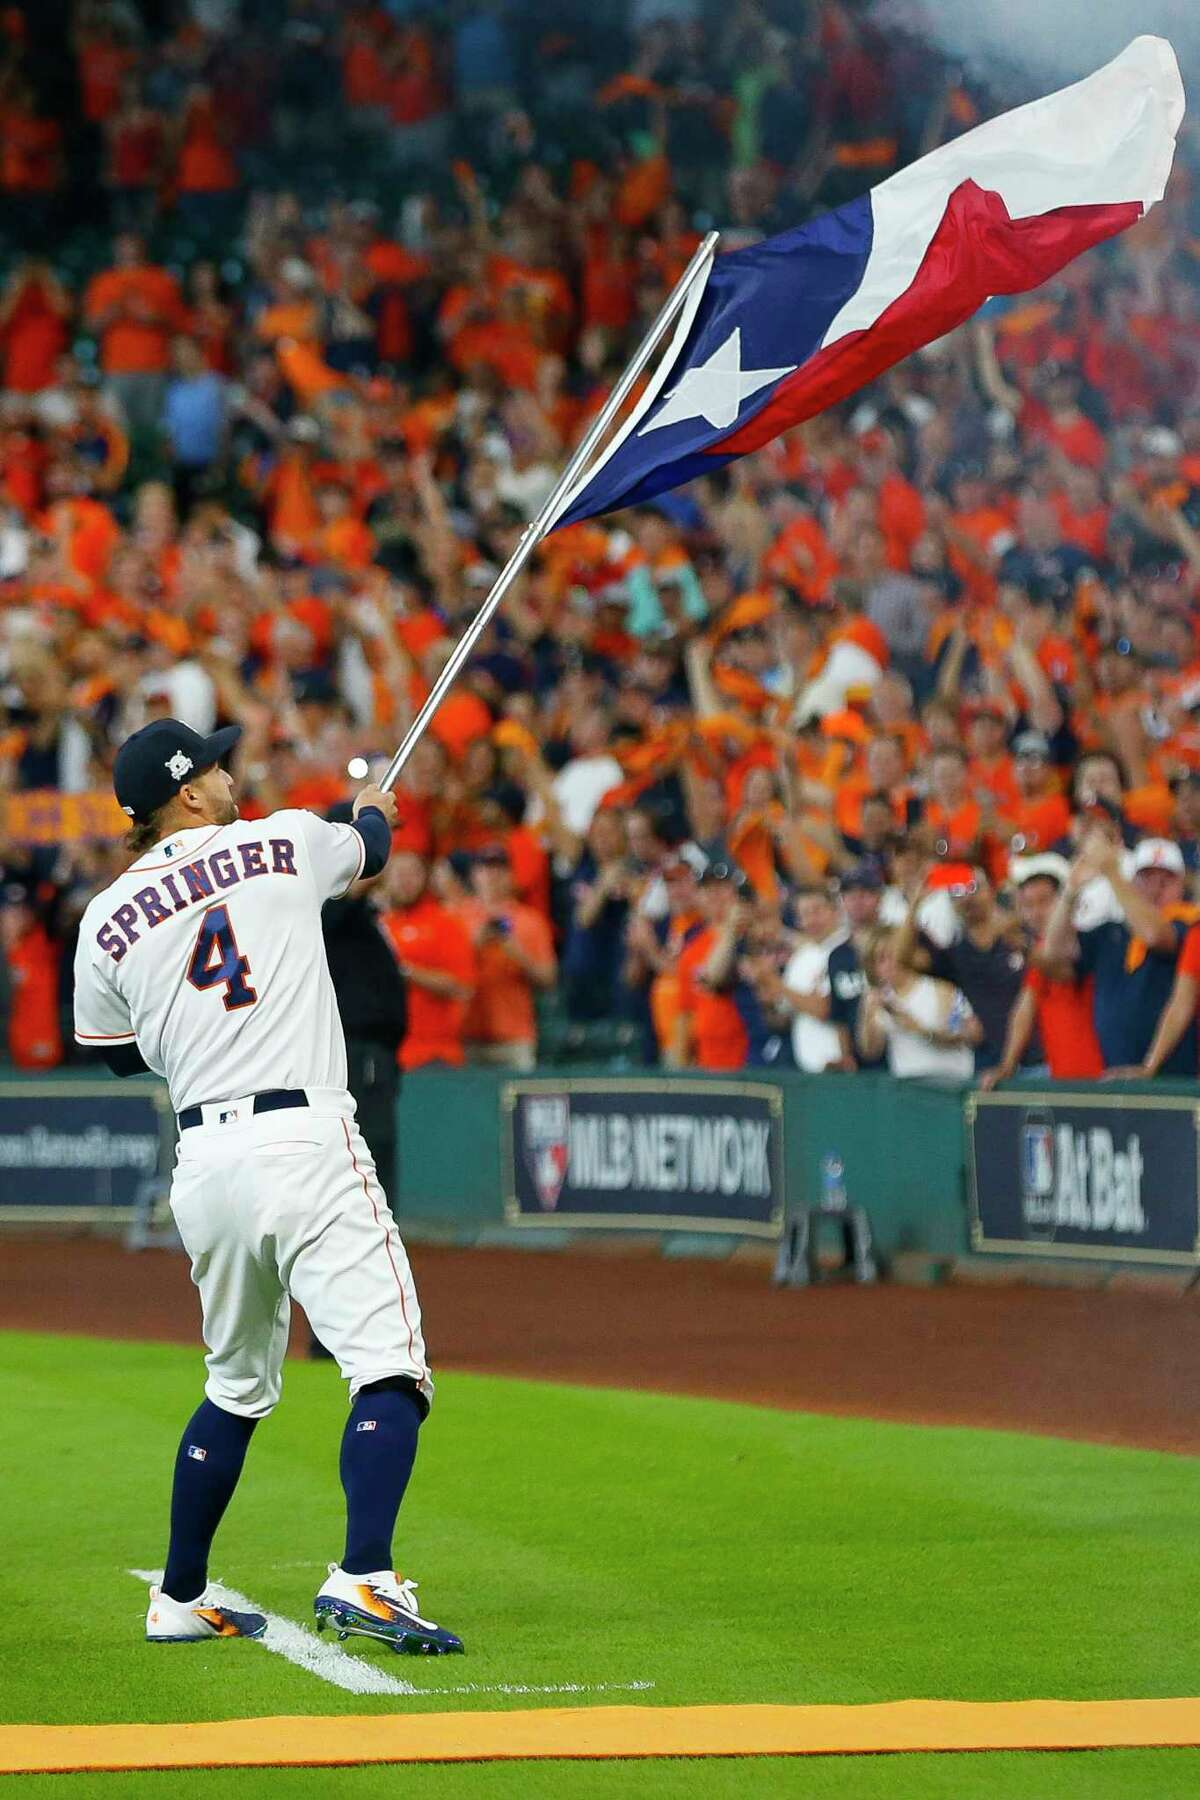 Houston Astros center fielder George Springer waves a Texas flag before the beginning of Game 1 of the ALDS at Minute Maid Park on Thursday, Oct. 5, 2017, in Houston.